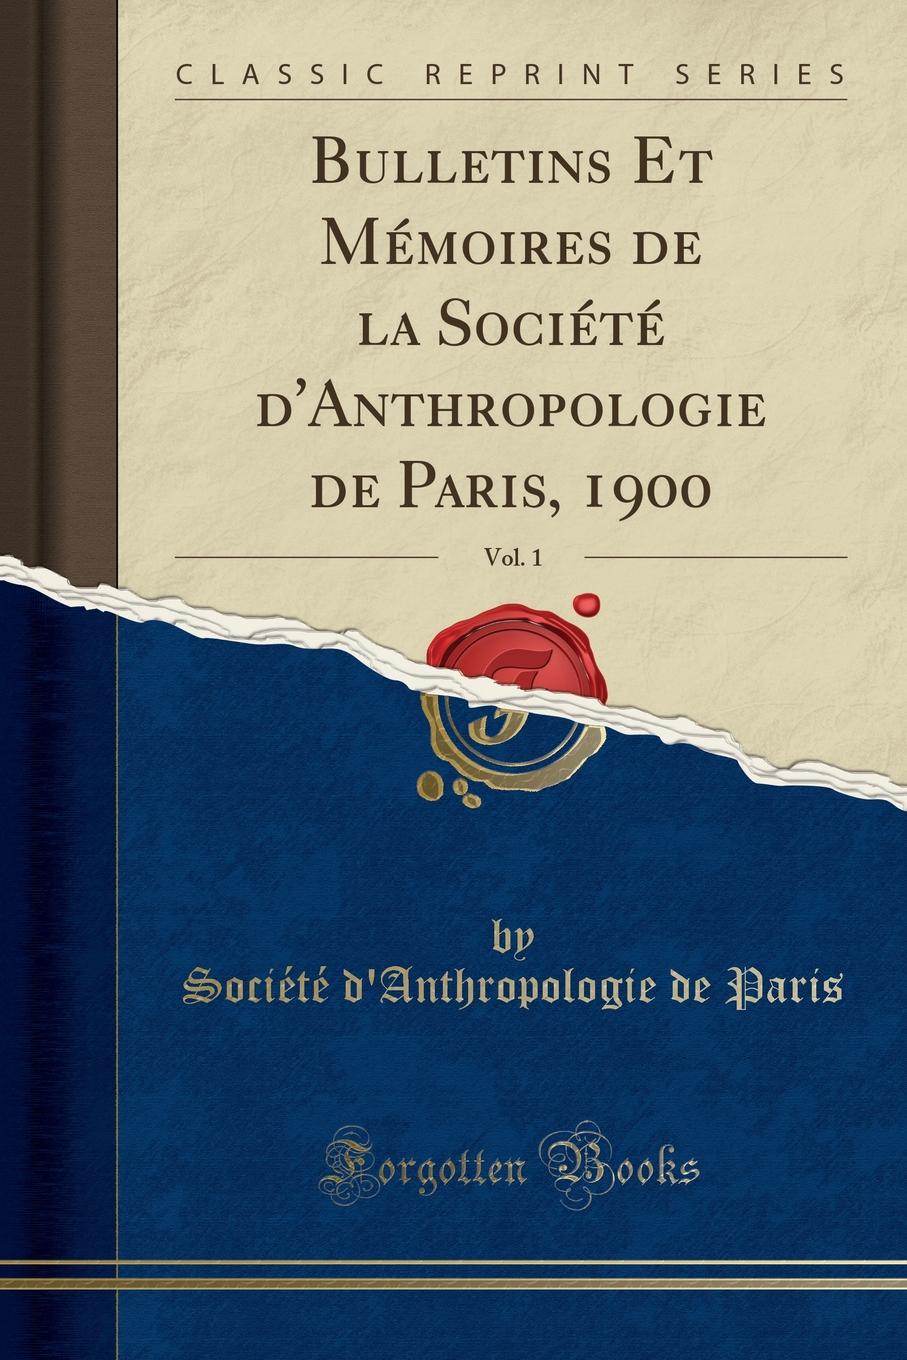 Société d'Anthropologie de Paris Bulletins Et Memoires de la Societe d.Anthropologie de Paris, 1900, Vol. 1 (Classic Reprint)